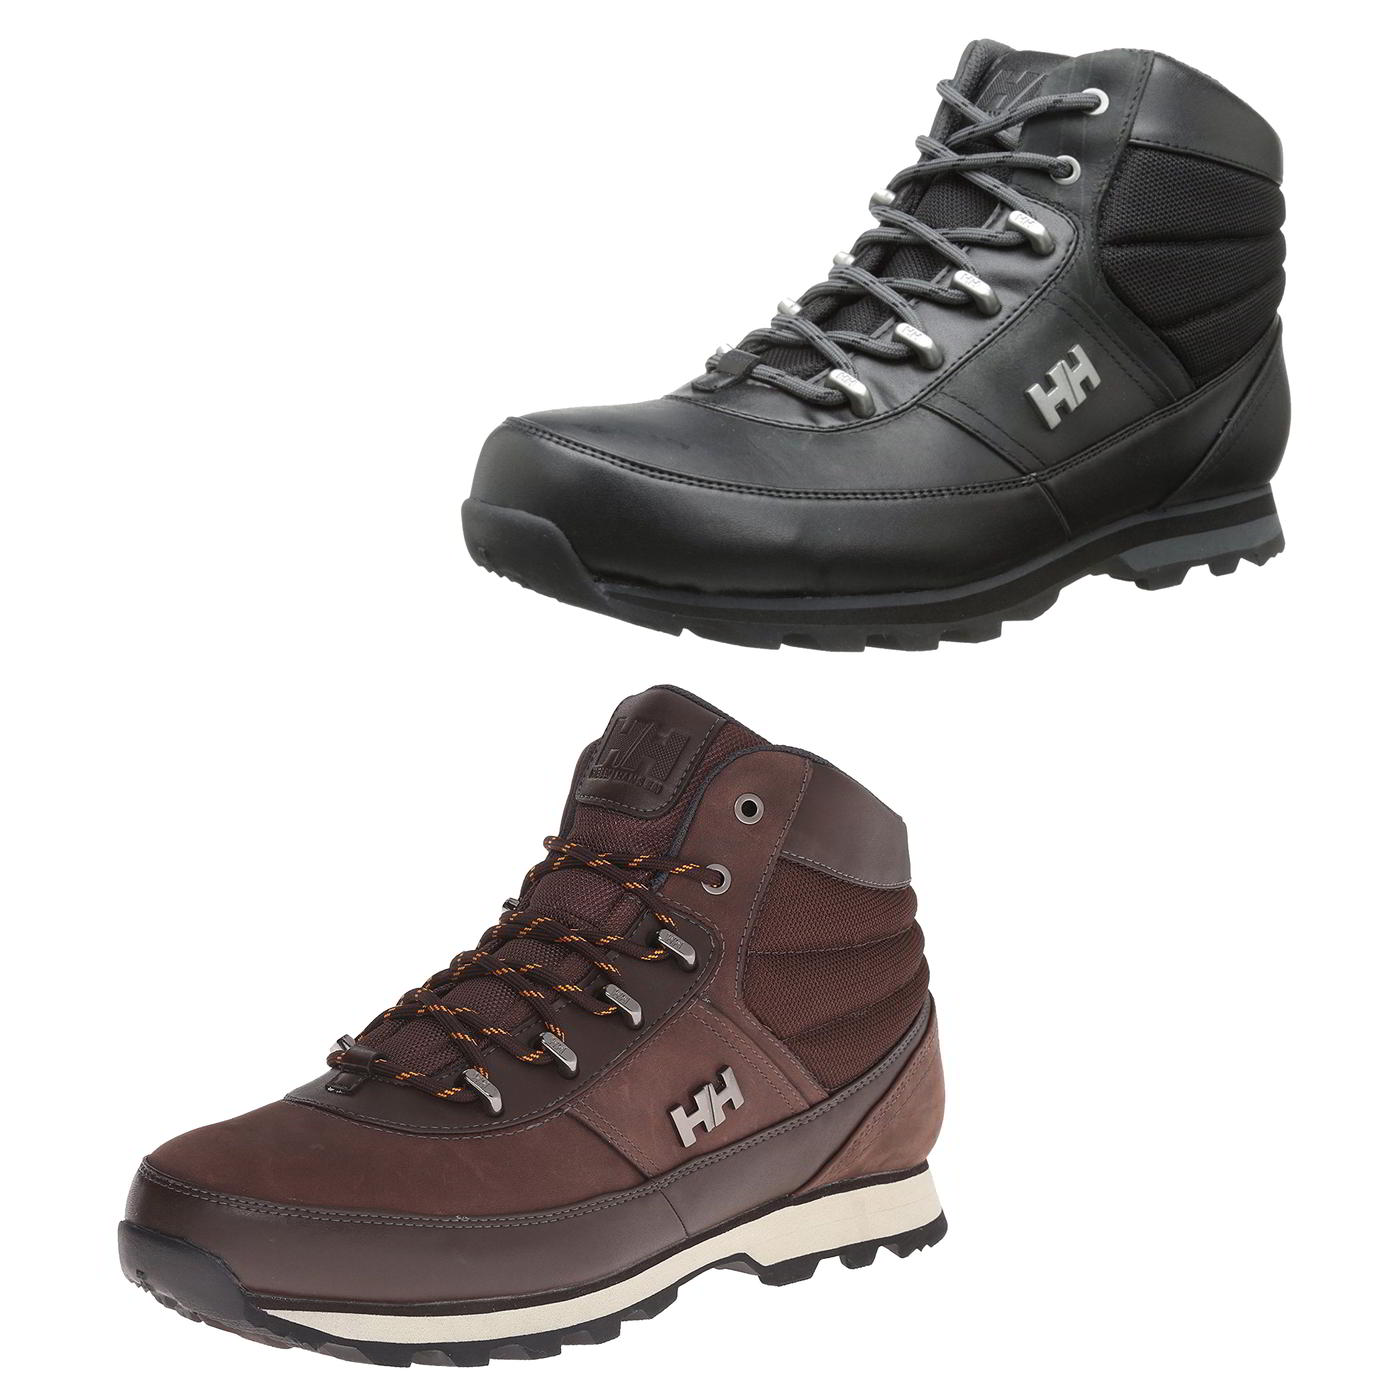 30709849326 Details about Helly Hansen Woodlands Mens Woodland Waterproof Walking  Hiking Boots Size 8-11